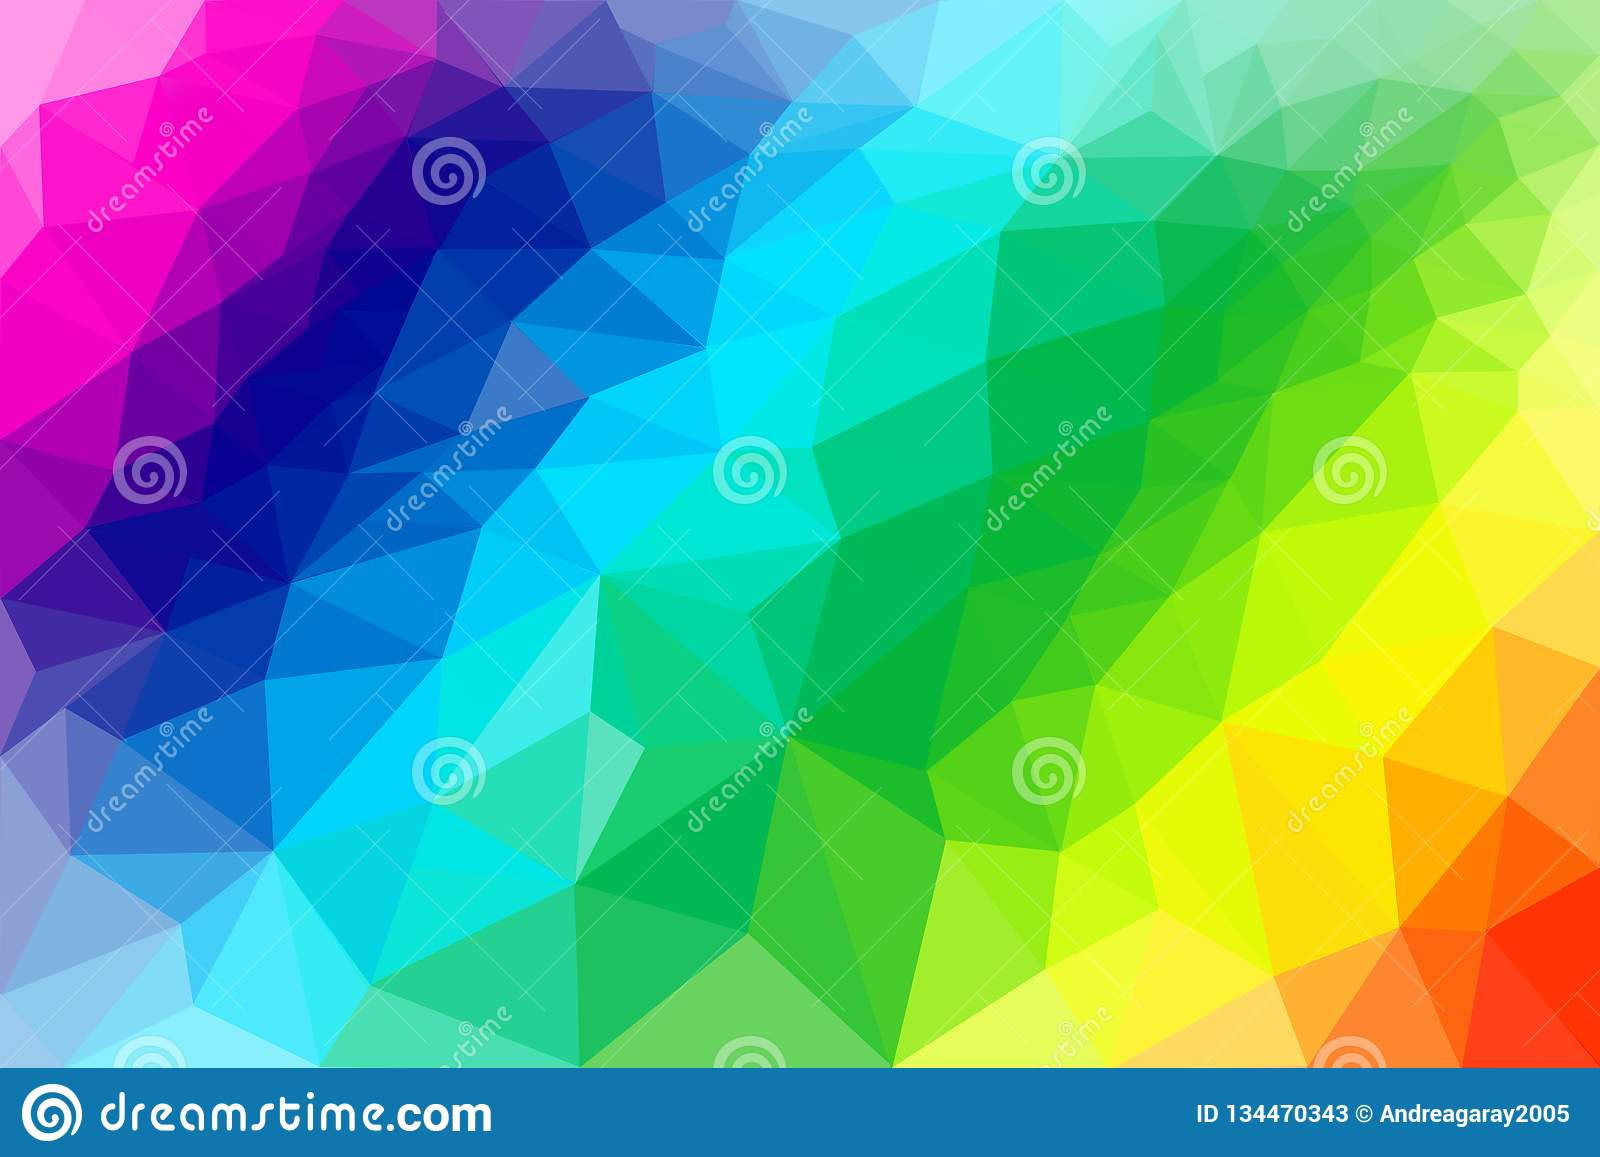 Low Poly abstract background illustration rainbow colours